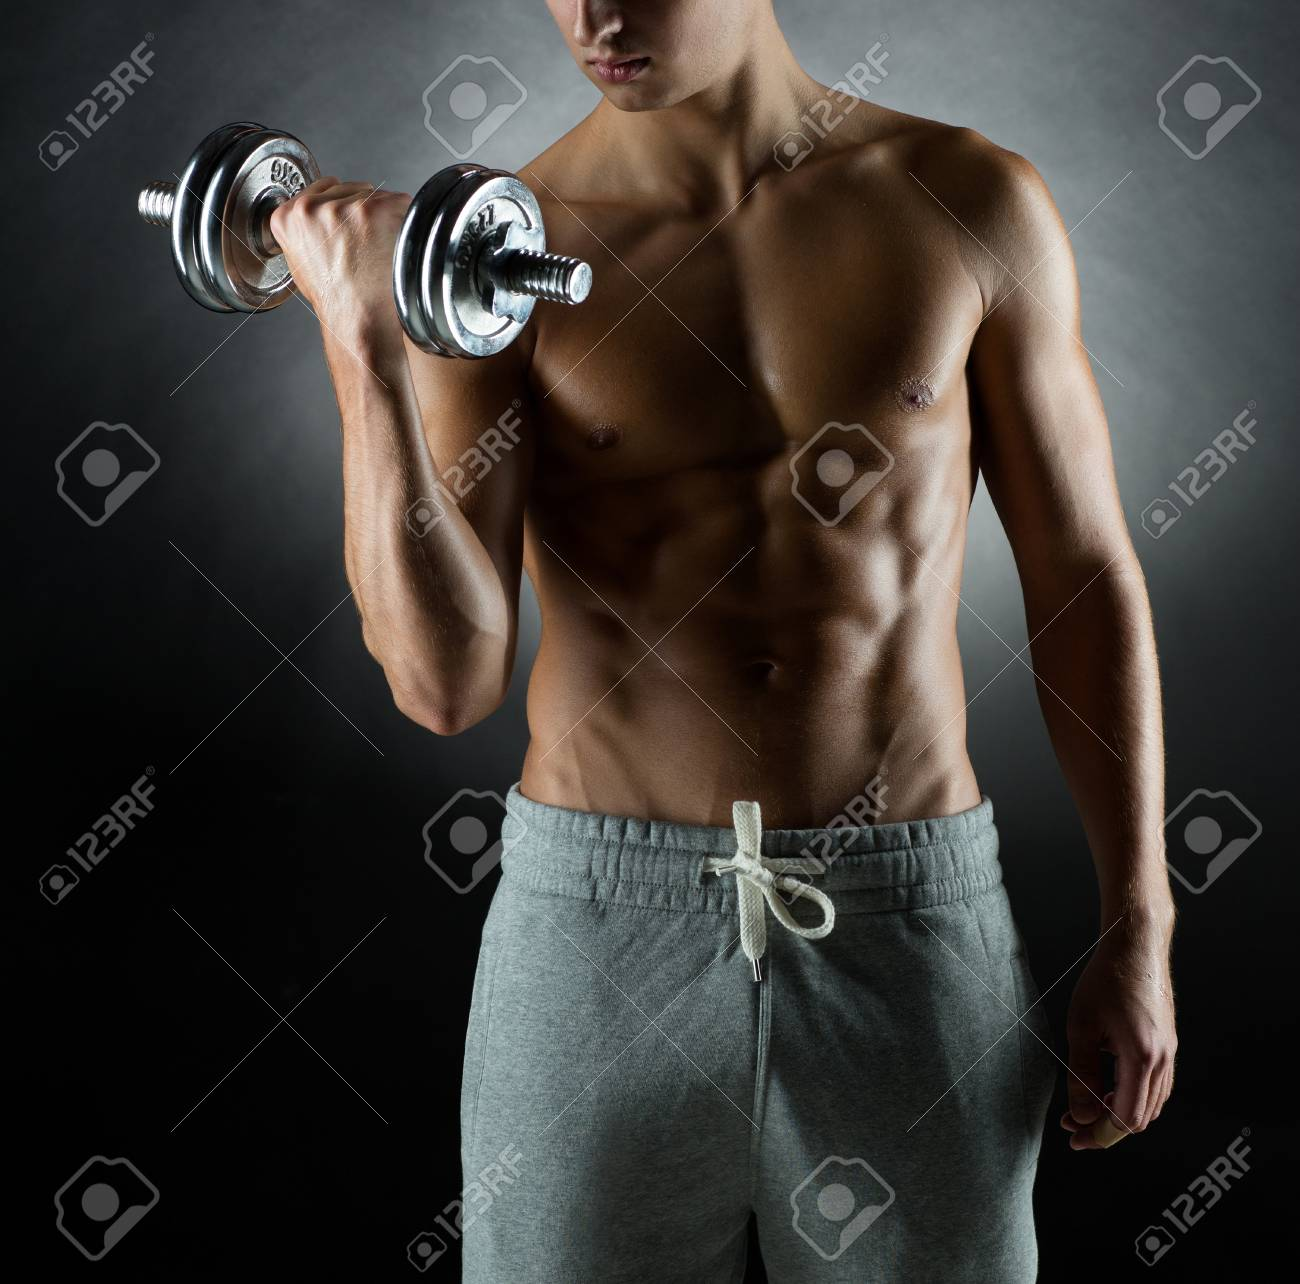 sport, bodybuilding, training and people concept - young man with dumbbell flexing muscles over gray background Stock Photo - 57632299